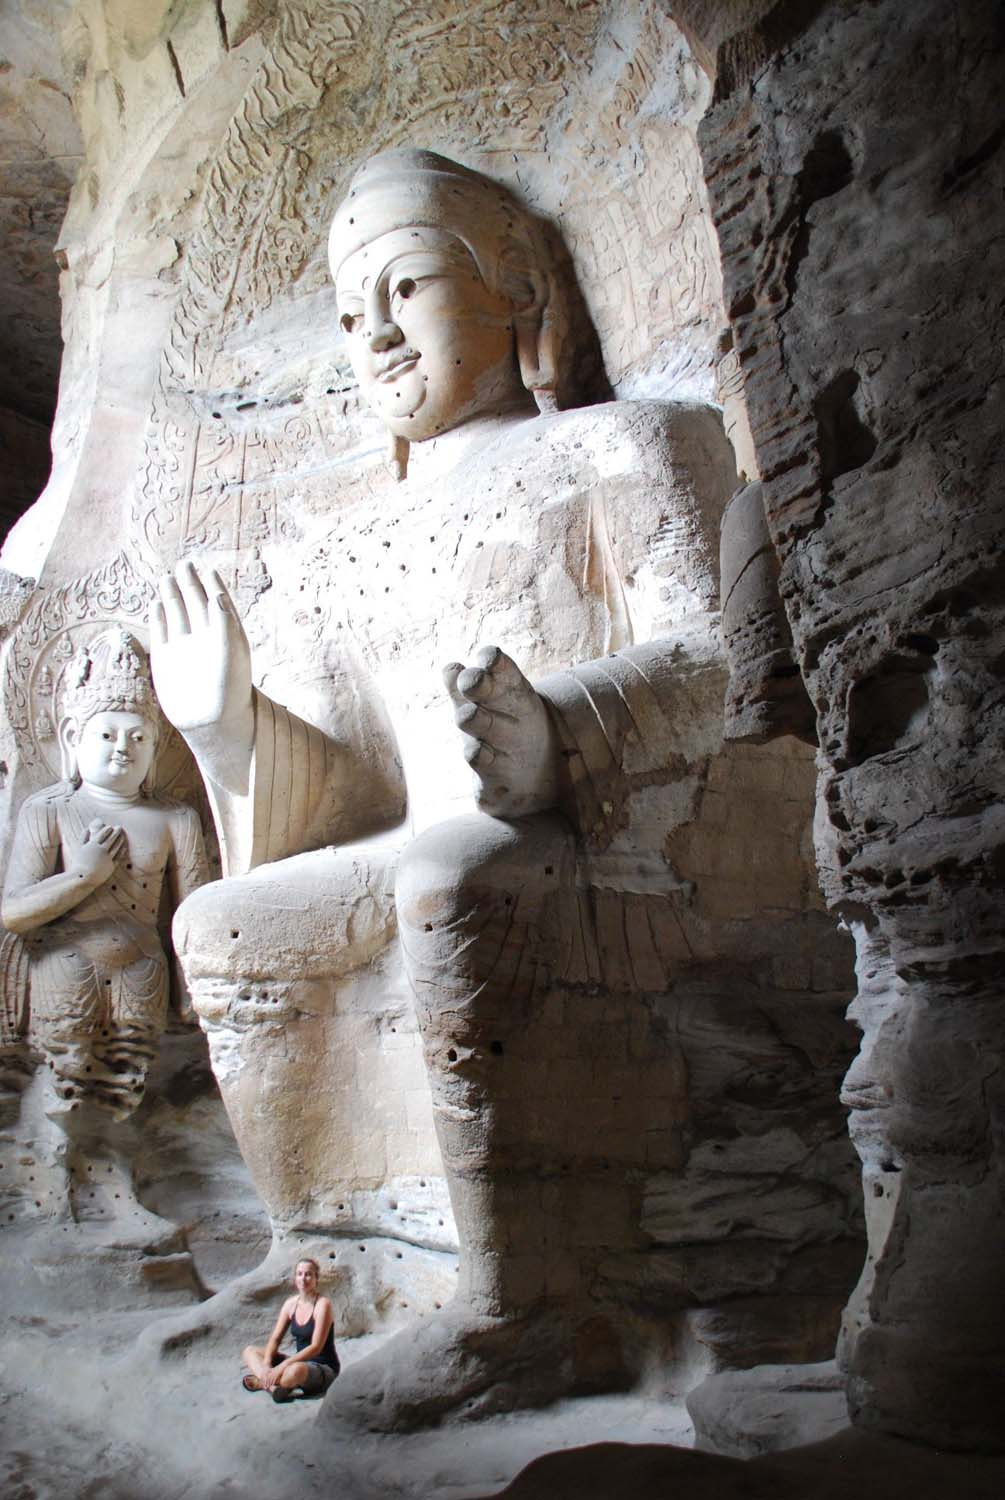 these ones were carved inside a cave, beautiful